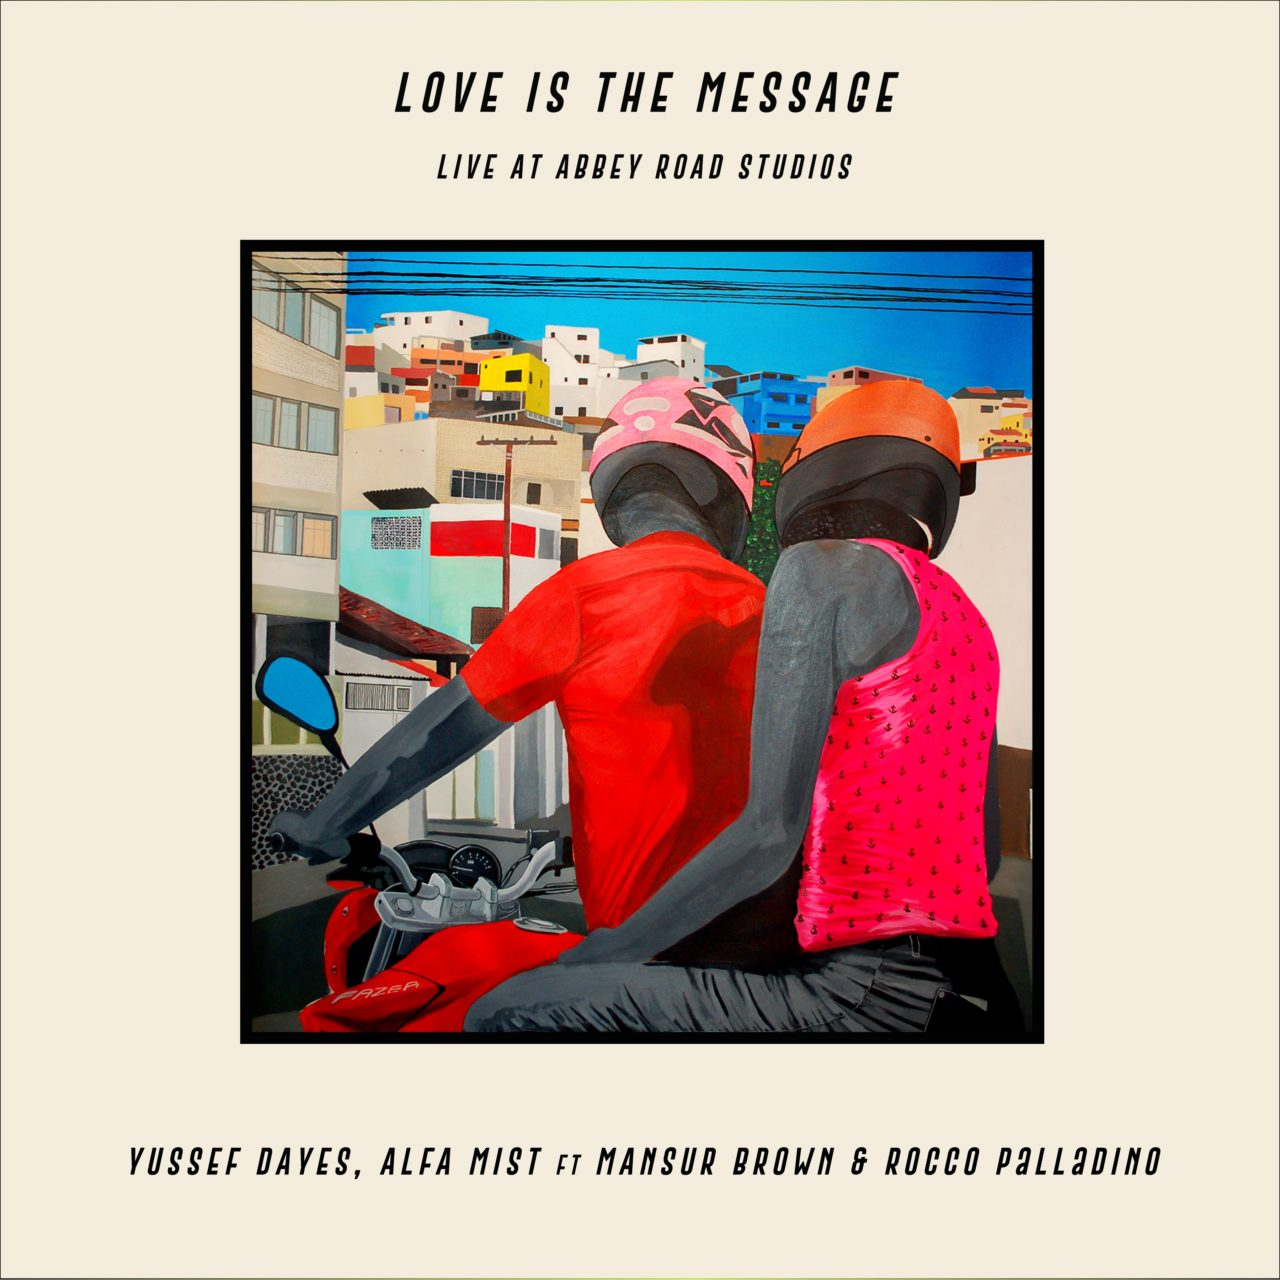 Love Is The Message (Live At Abbey Road Studios) - Yussef Dayes